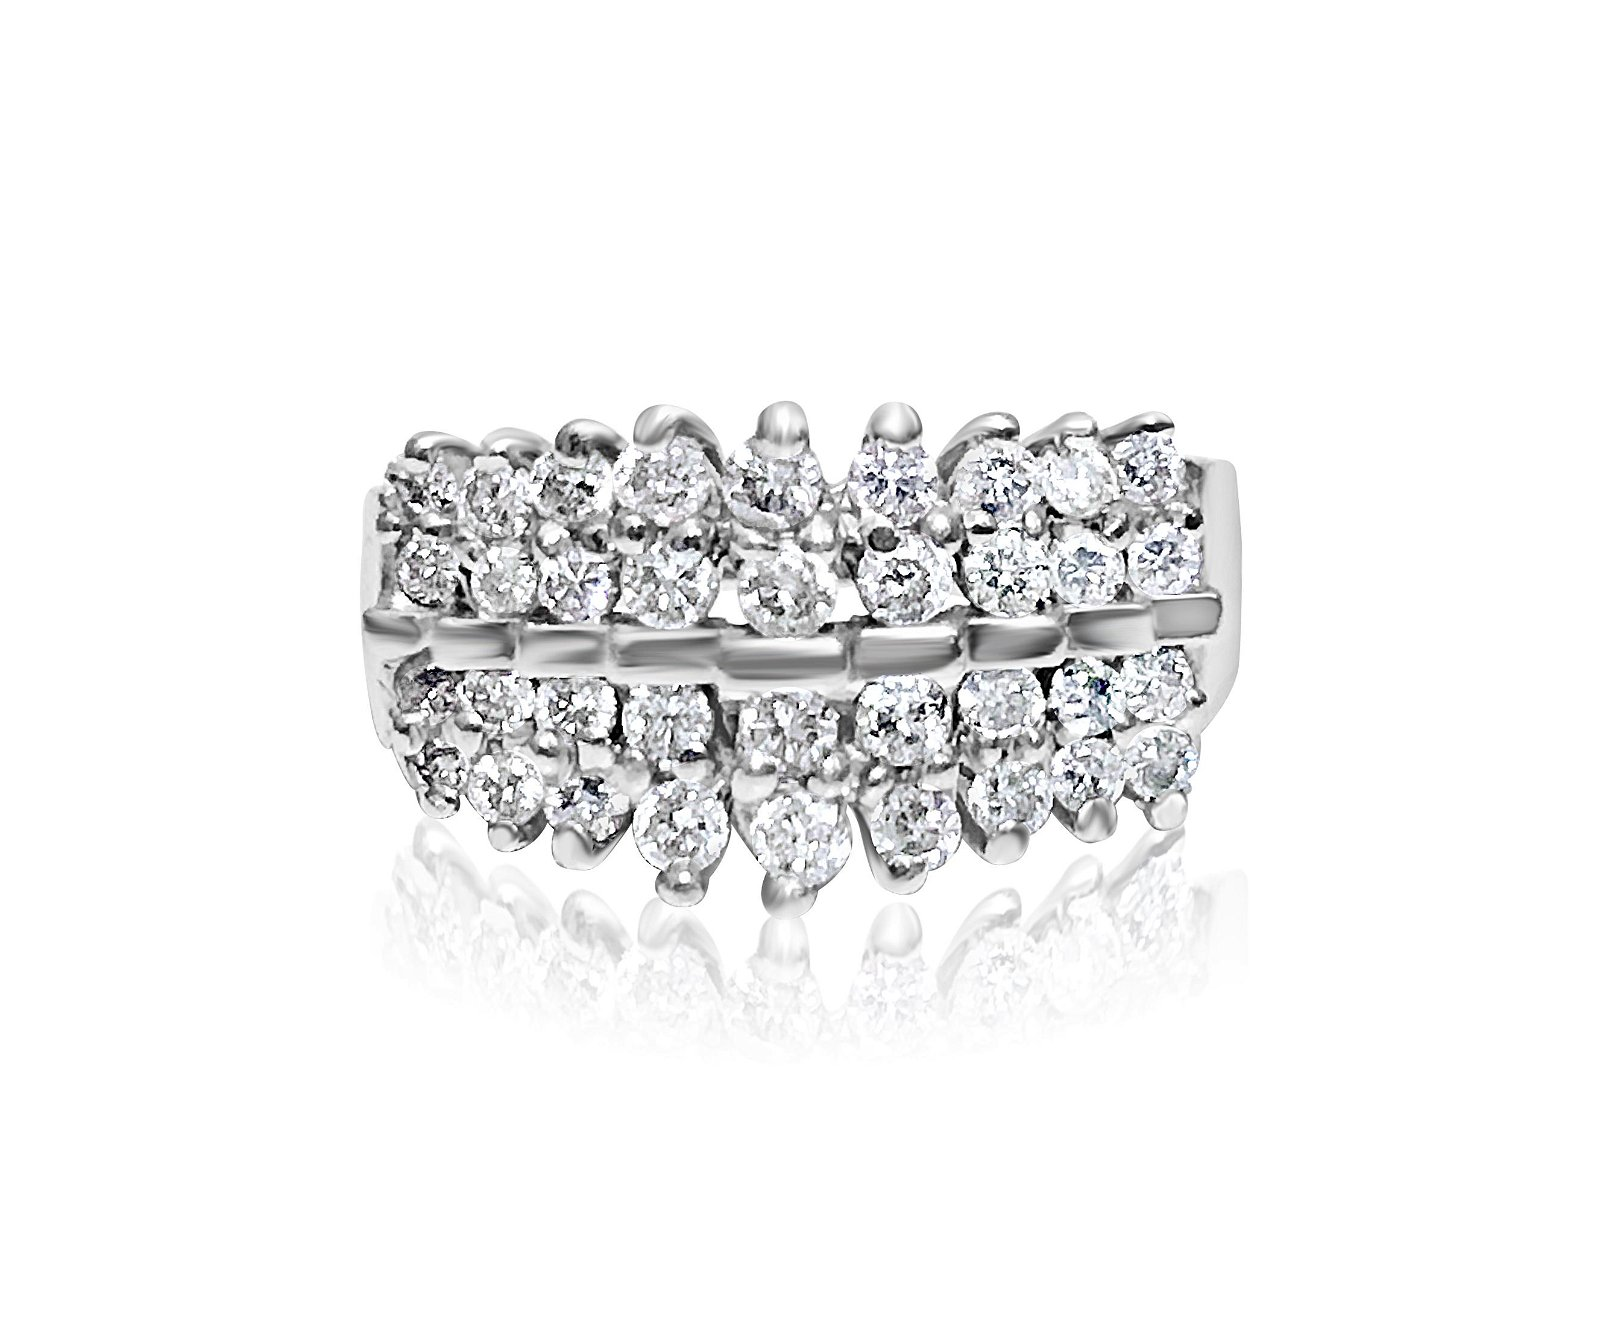 14K White Gold, 1.00 carat VS/G Diamond Cocktail Ring